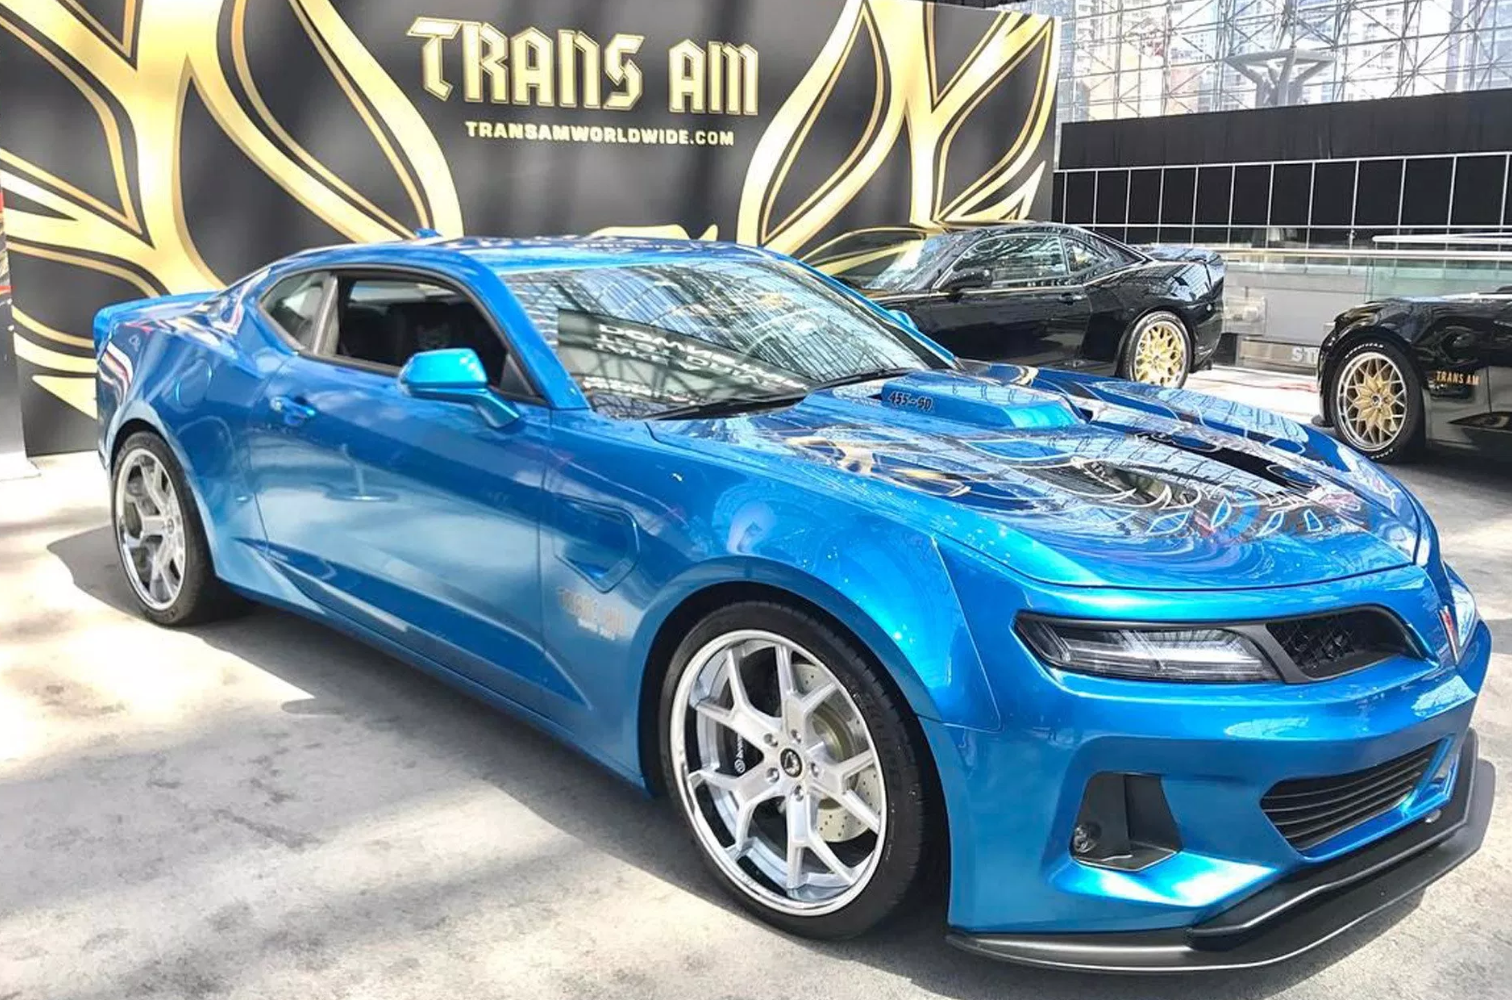 2020 Buick Firebird Release Date Price Interior Genuinely There Are No Details That Buick Firebird Ret Pontiac Firebird Trans Am Trans Am Pontiac Firebird